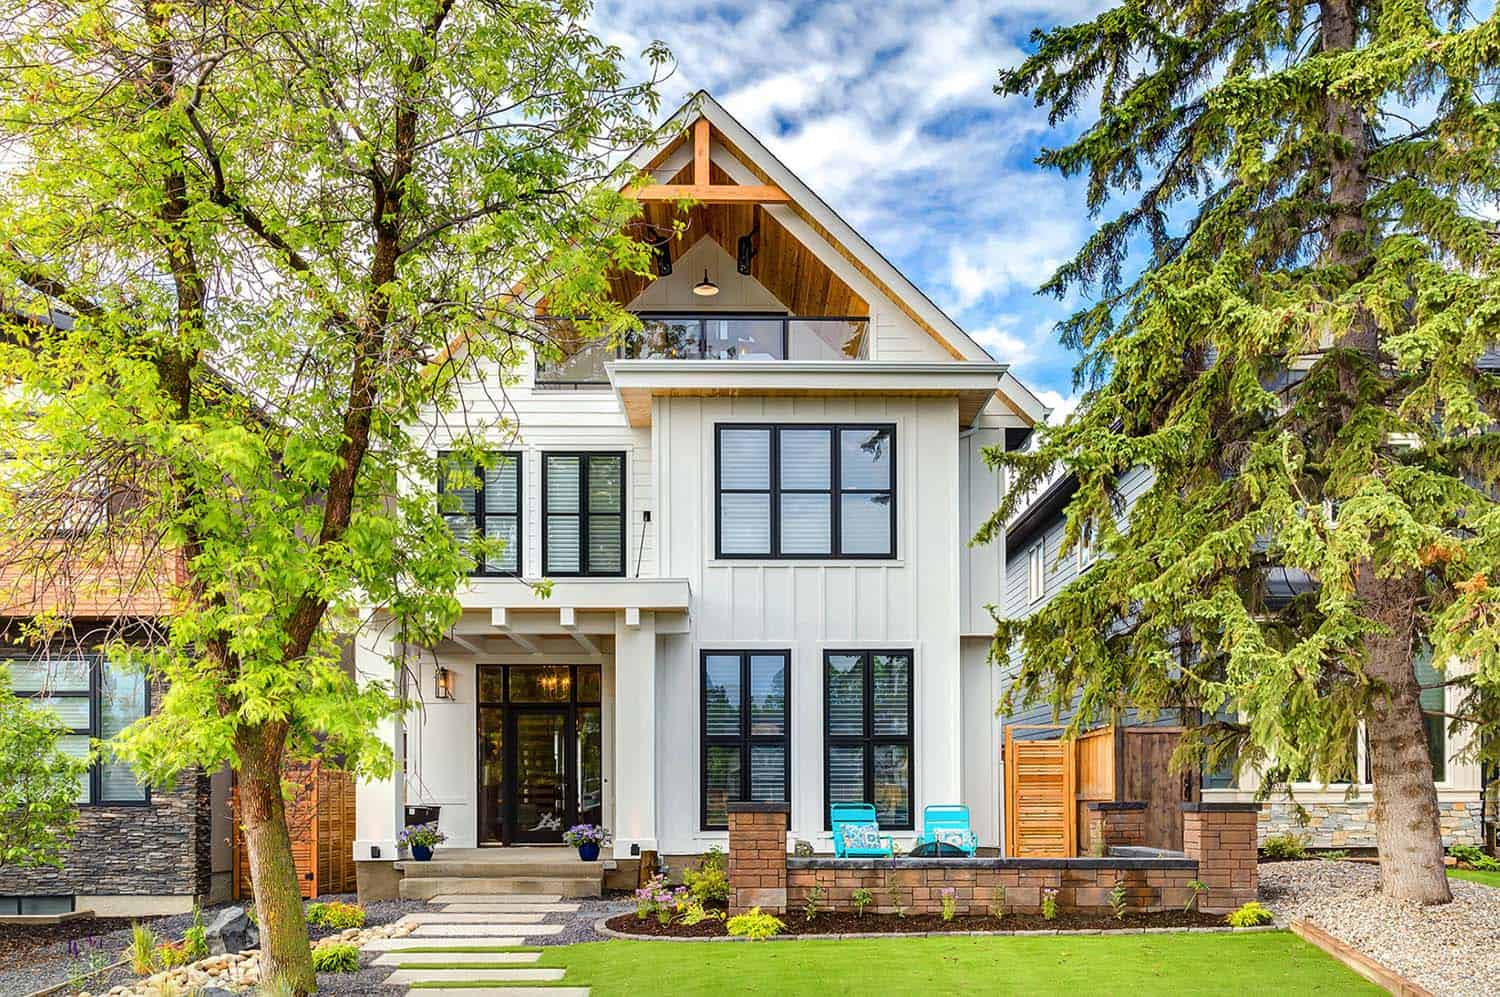 Calgary home radiates with fresh, modern farmhouse style on nigerian home designs, 2015 home designs, carriage house home designs, rustic home designs, split level home designs, chalet home designs, country home designs, building home designs, three story home designs, lodge home designs, unusual home designs, bungalow home designs, traditional home designs, split ranch home designs, small hog house designs, saltbox home designs, craftsman home designs, contemporary home designs, sod roof home designs, farm house exterior designs,